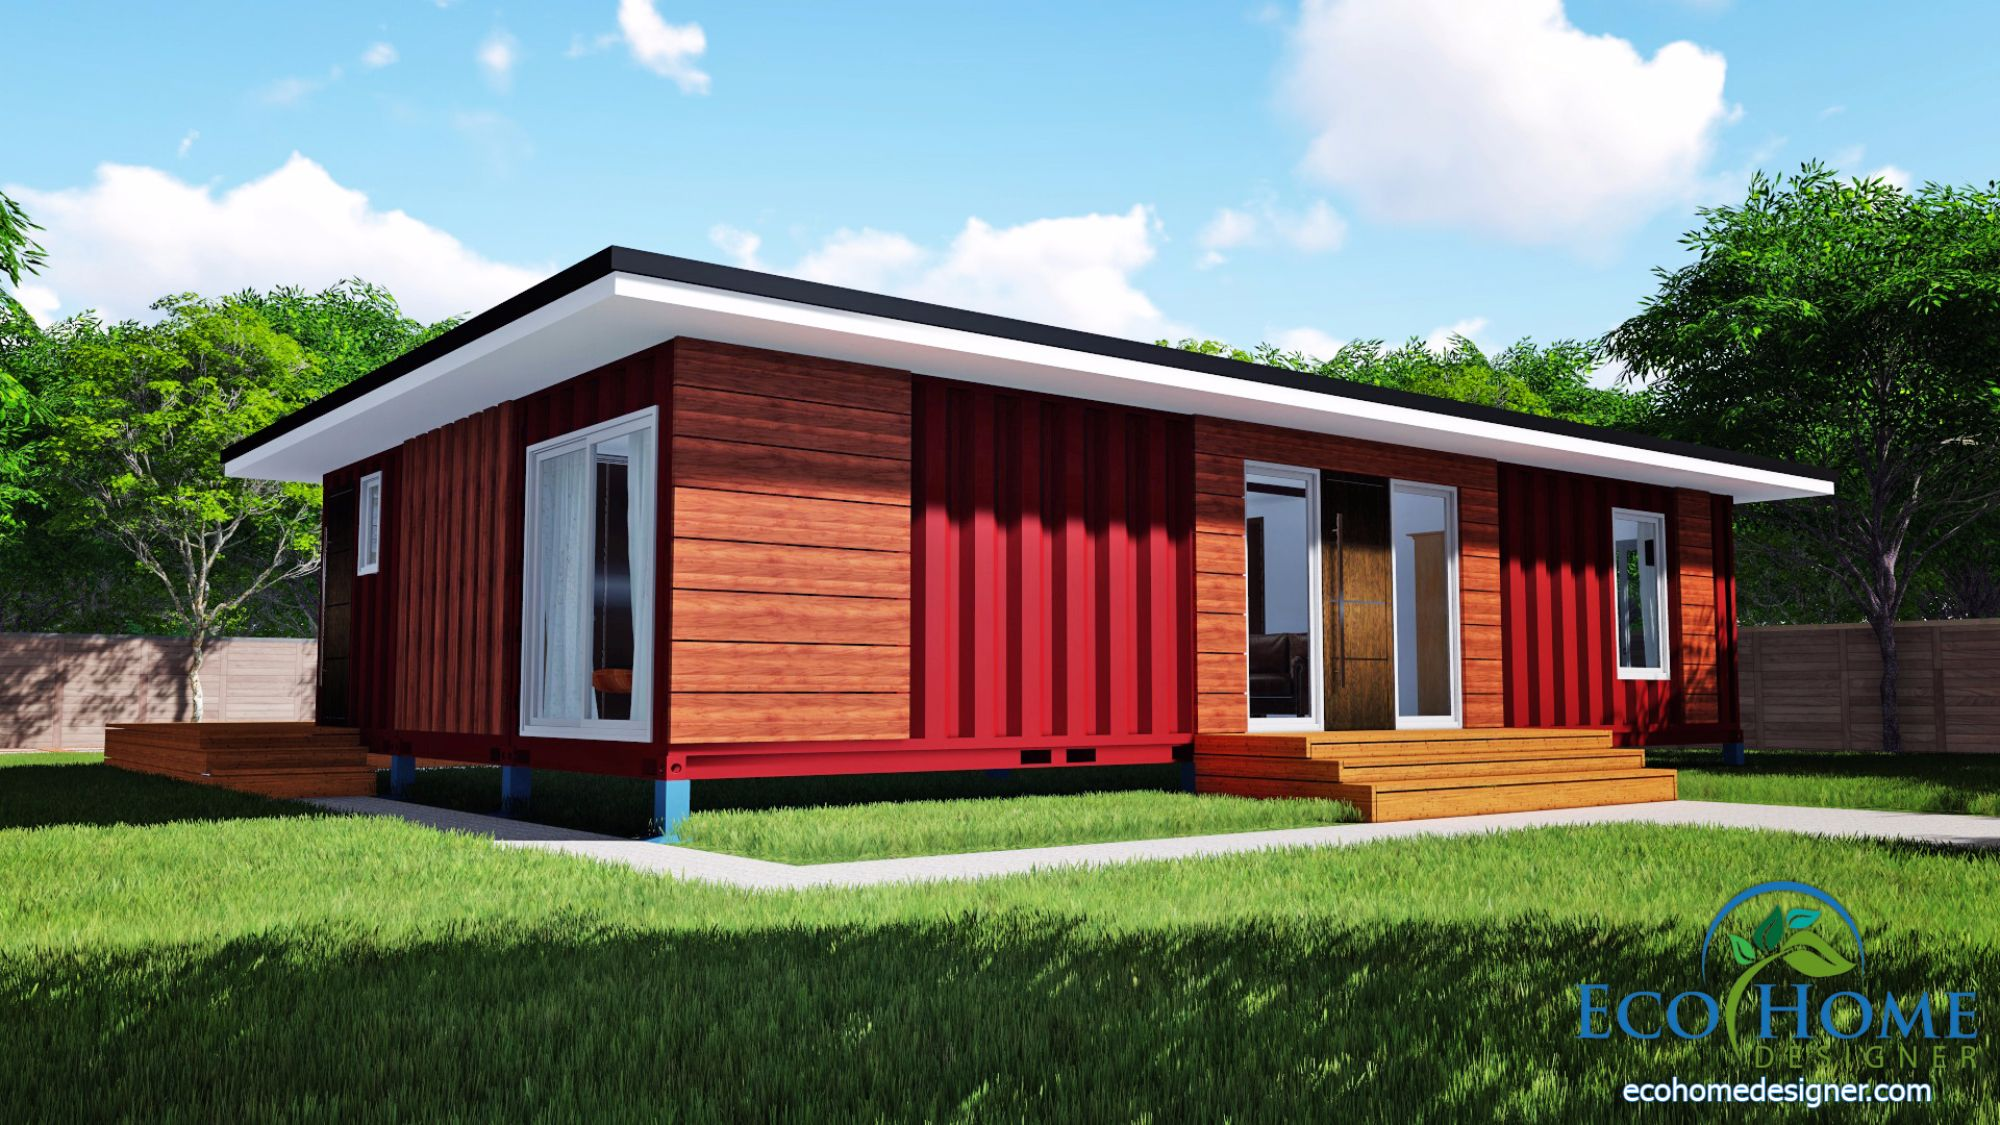 sch11 3 x 40ft 2 bedroom container home plans eco home For3 40 Ft Container Home